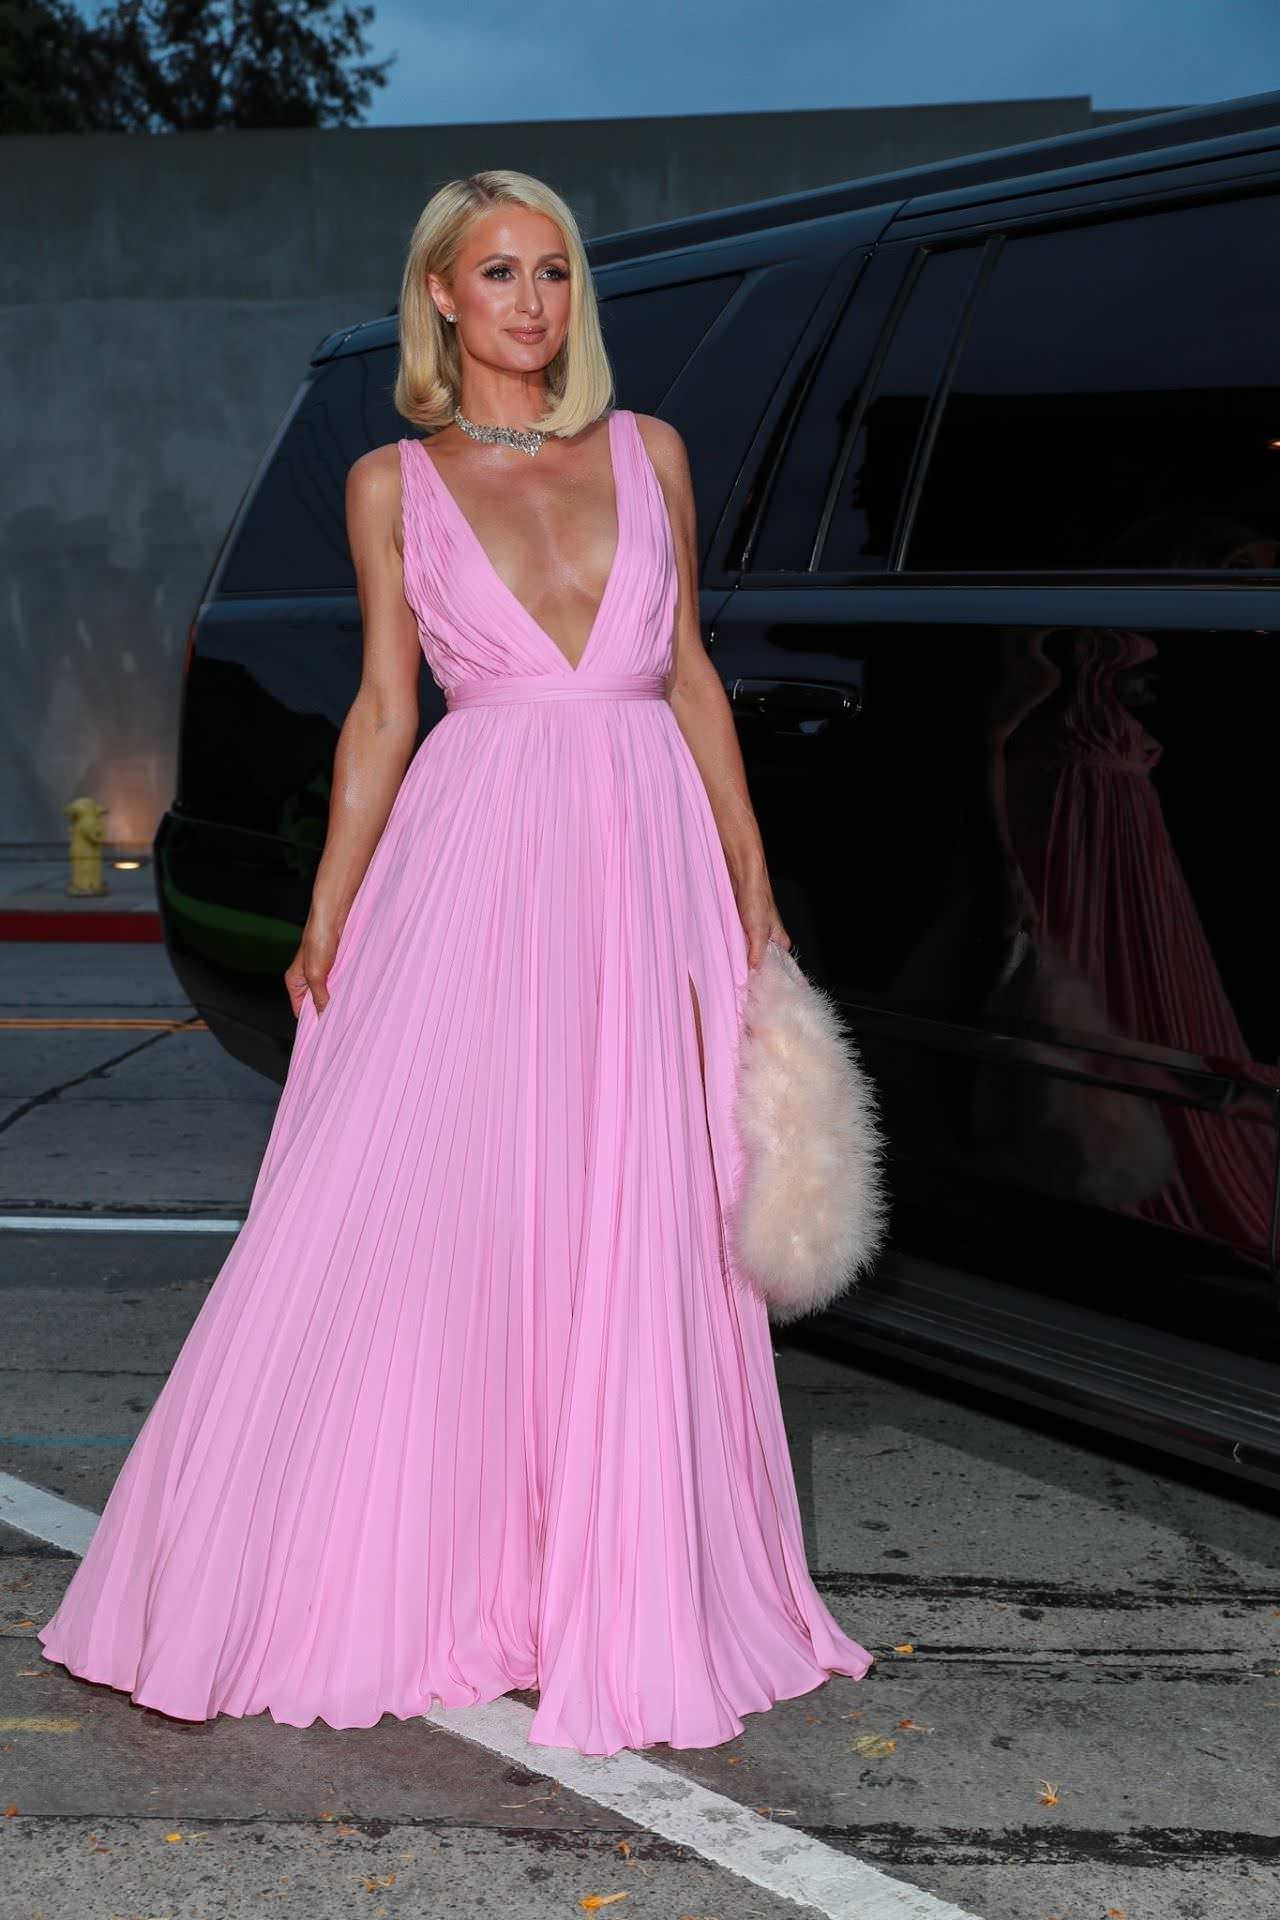 Paris Hilton Wowed in a Pink Gown by Givenchy at Craig's